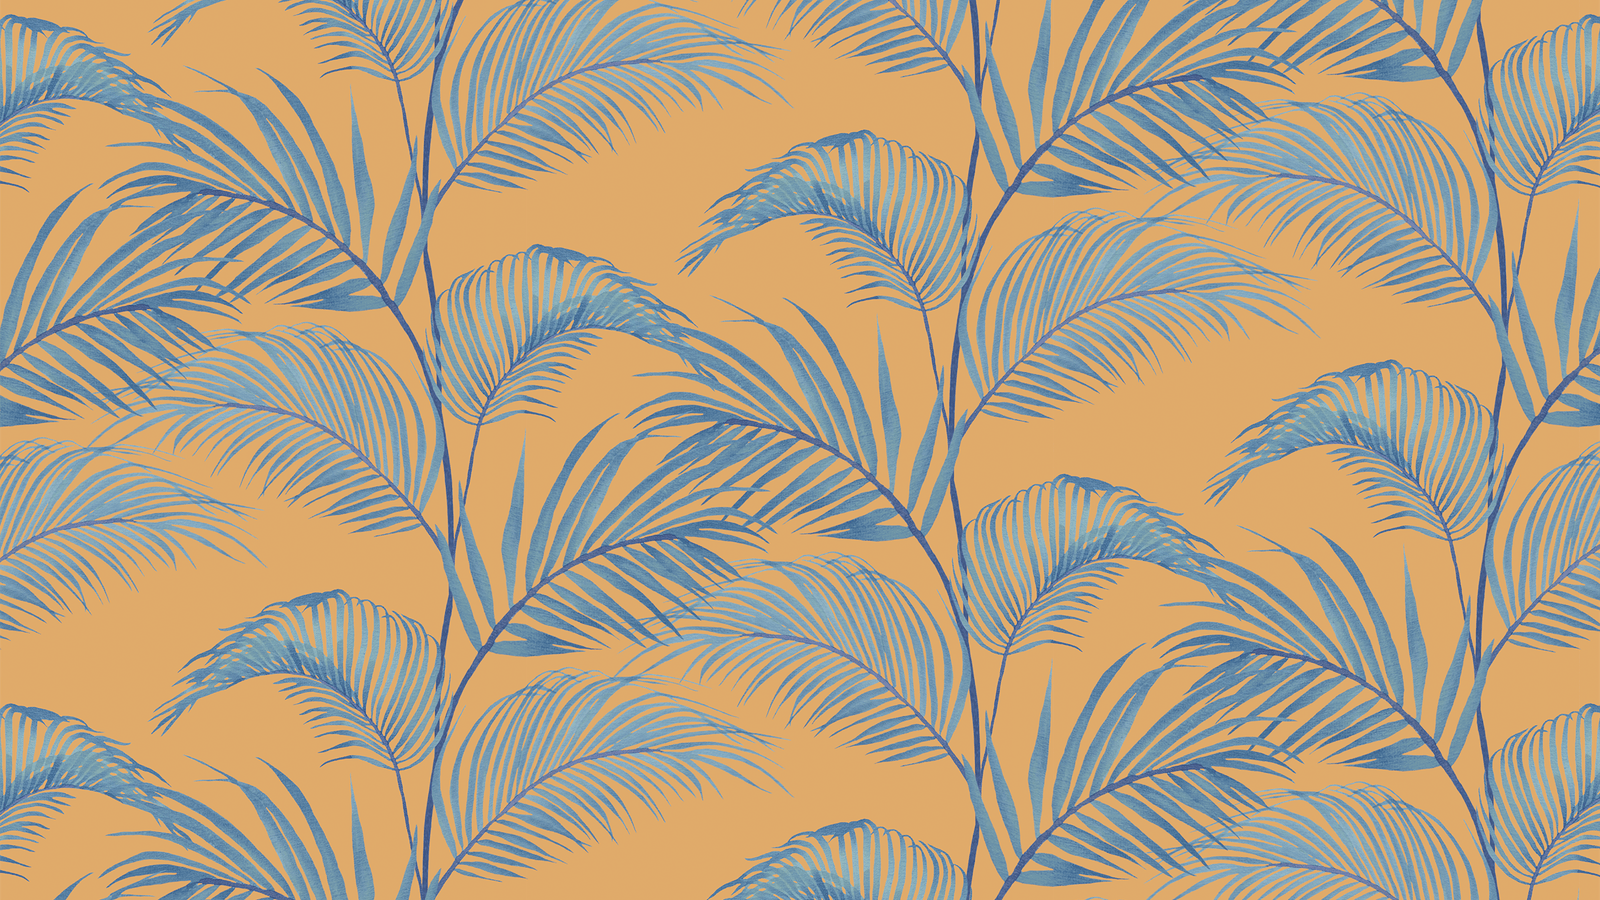 Lick x Belinda Bayley Jungle 01 orange palm leaf wallpaper